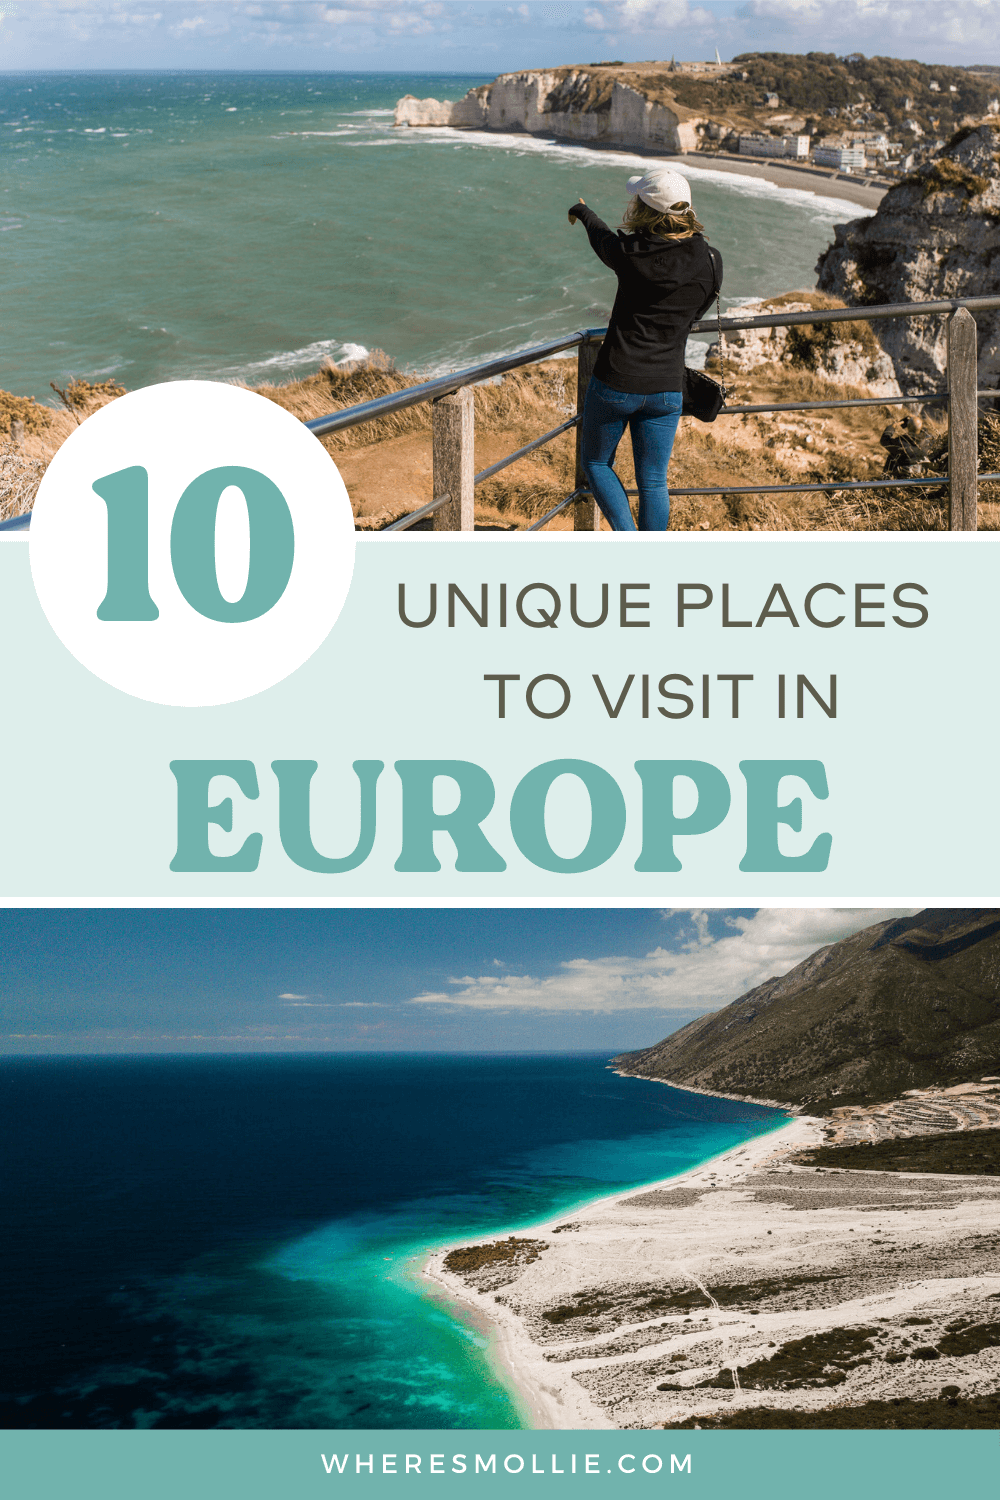 Unusual places to visit in Europe - hidden gems in Europe - unique places to visit in Europe - Where's Mollie